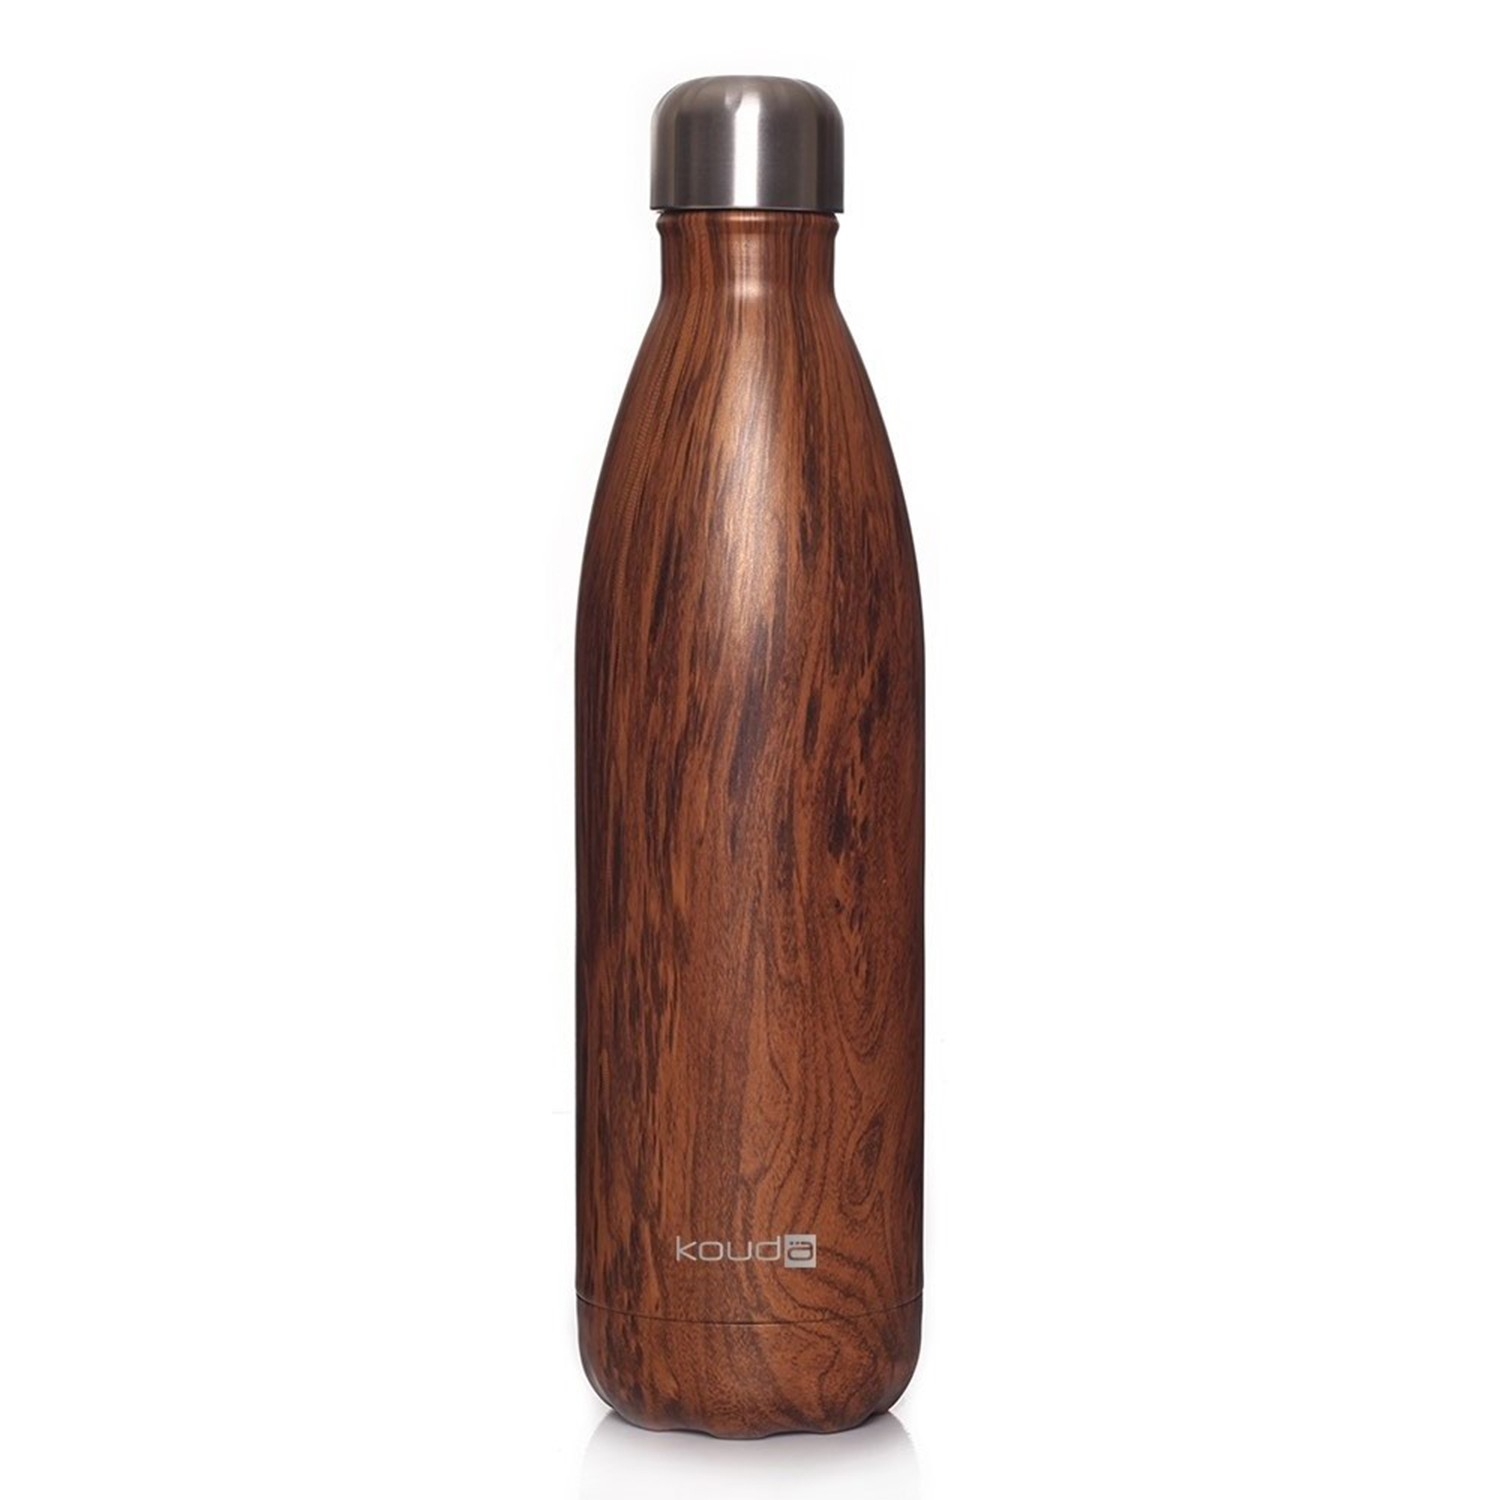 Garrafa Kouda Grey 750ml Wood Classic